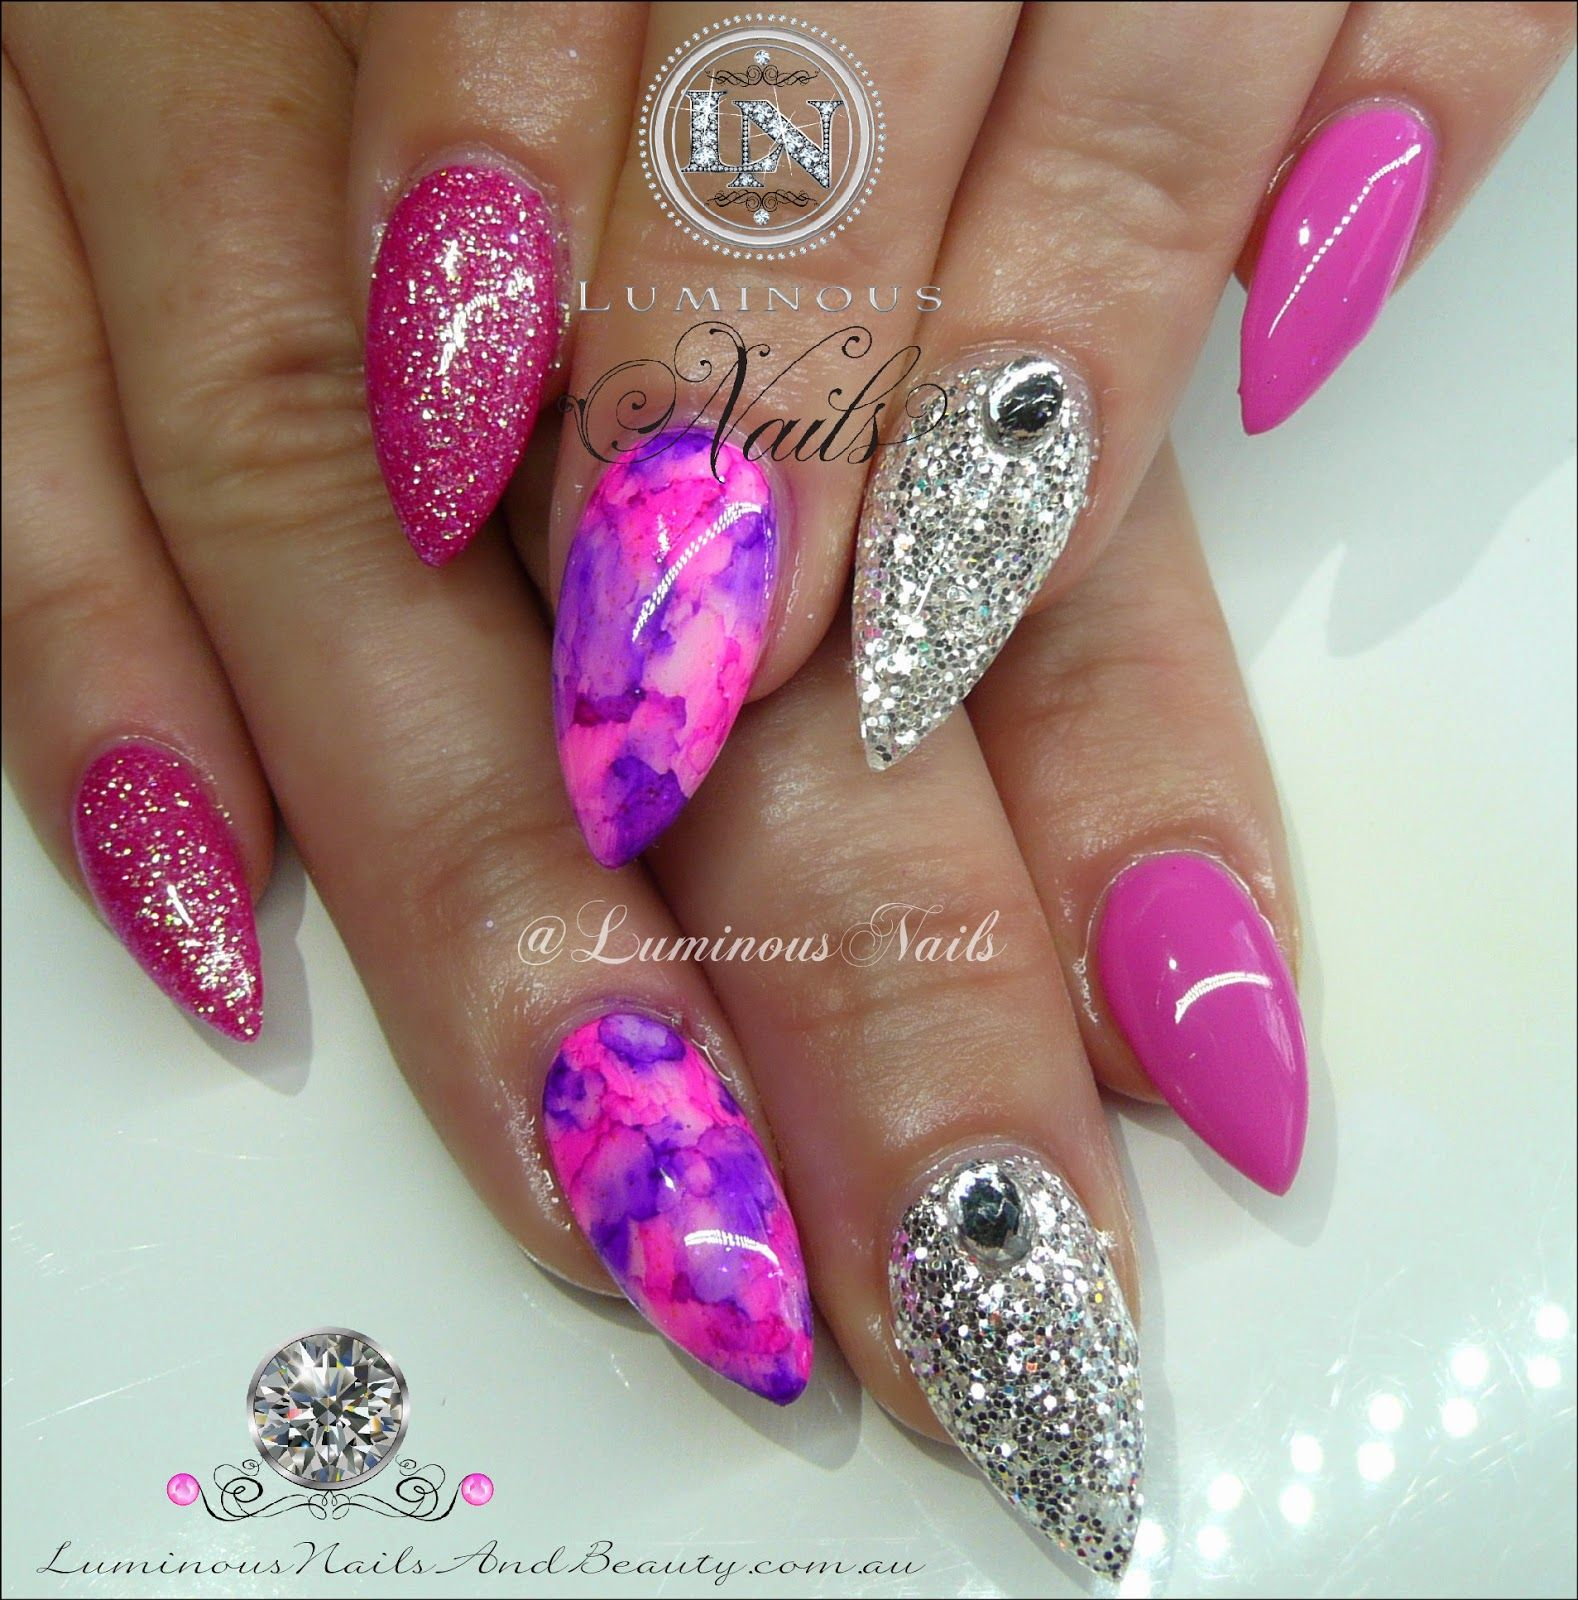 Pink and silver nails - Blue Glitter Nails On Pinterest Long Fingernails Glitter Royal Blue And Silver Nail Designs